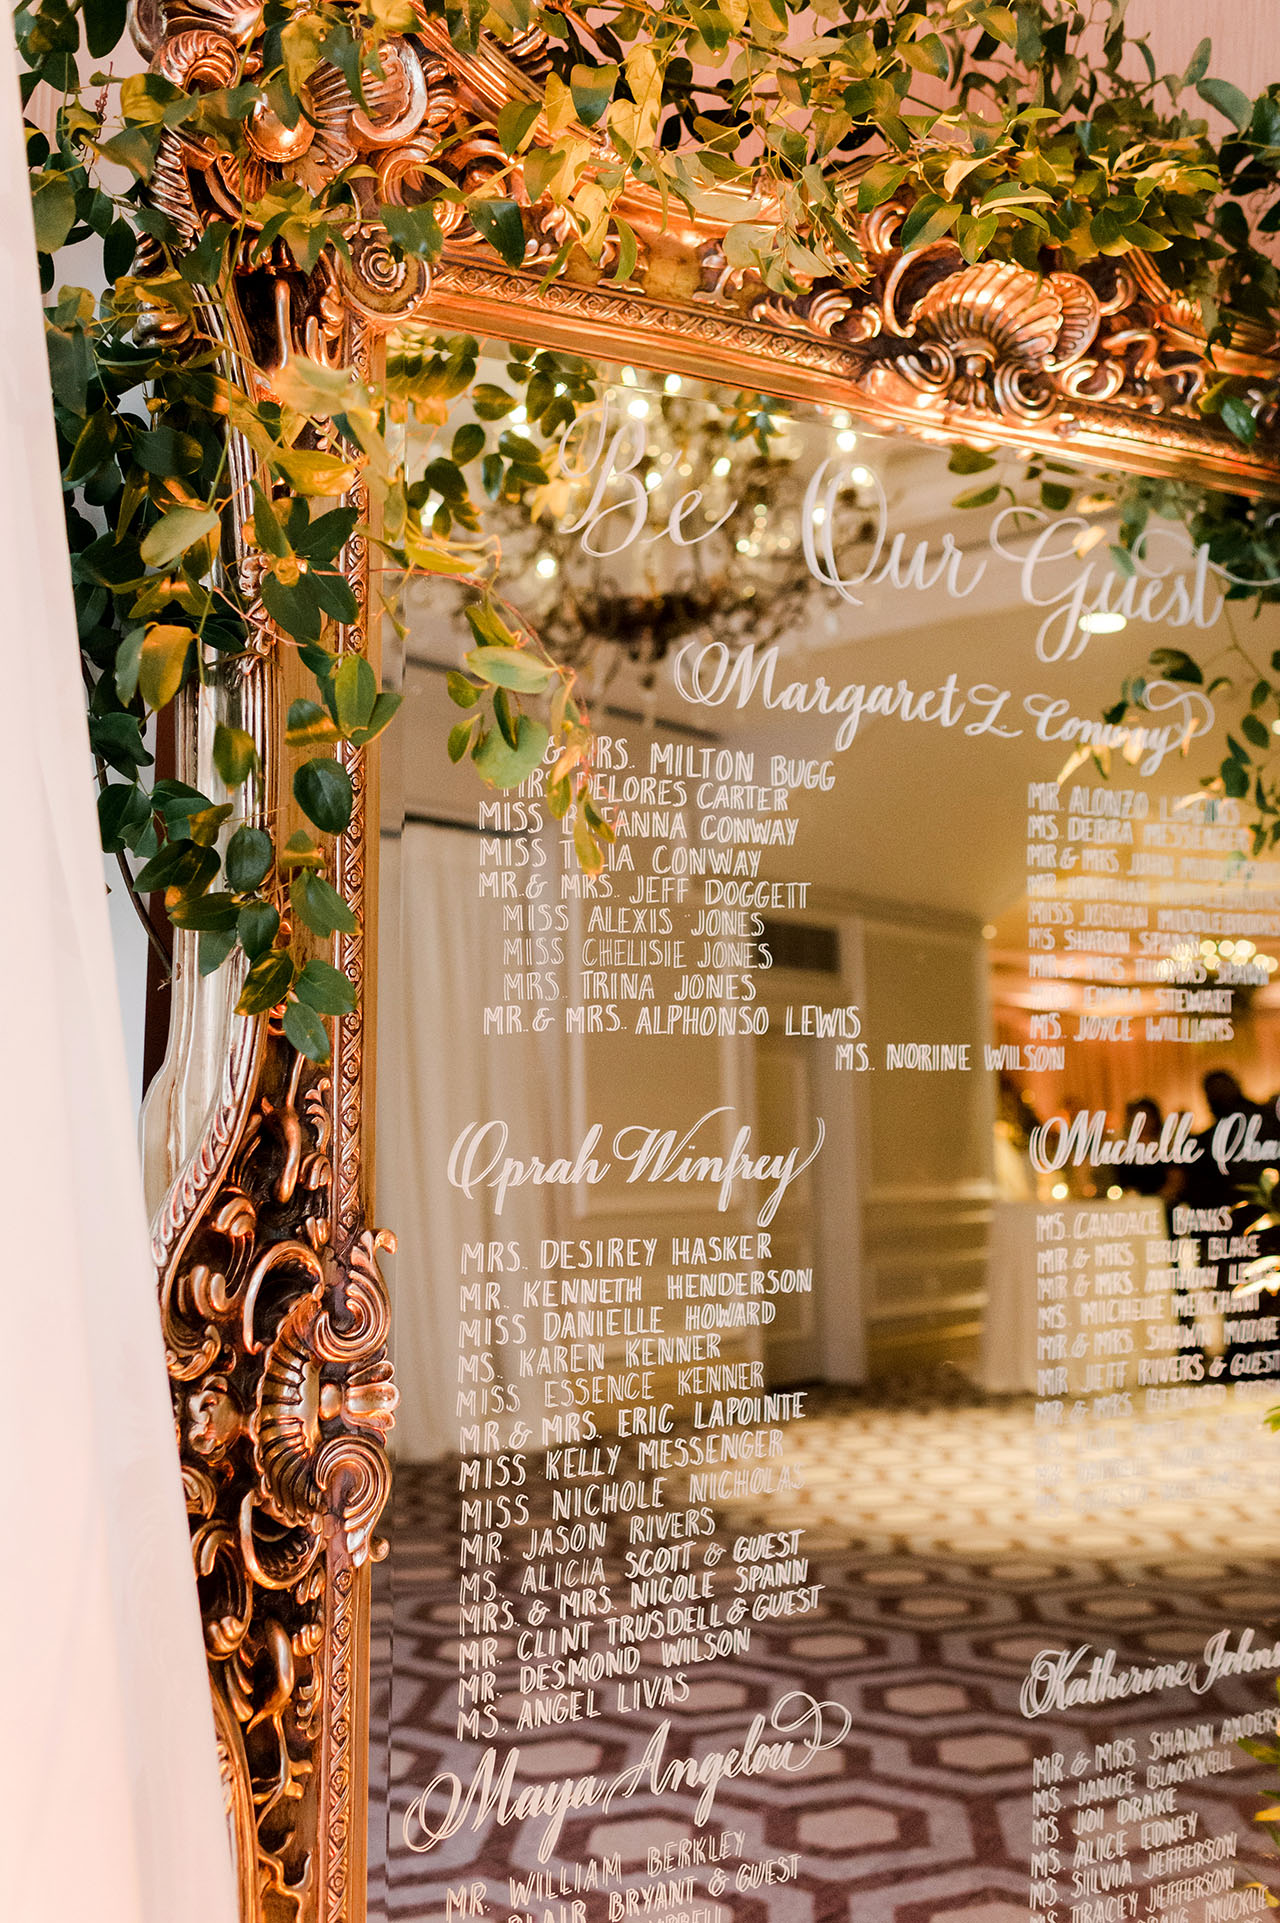 denita john wedding seating chart mirror